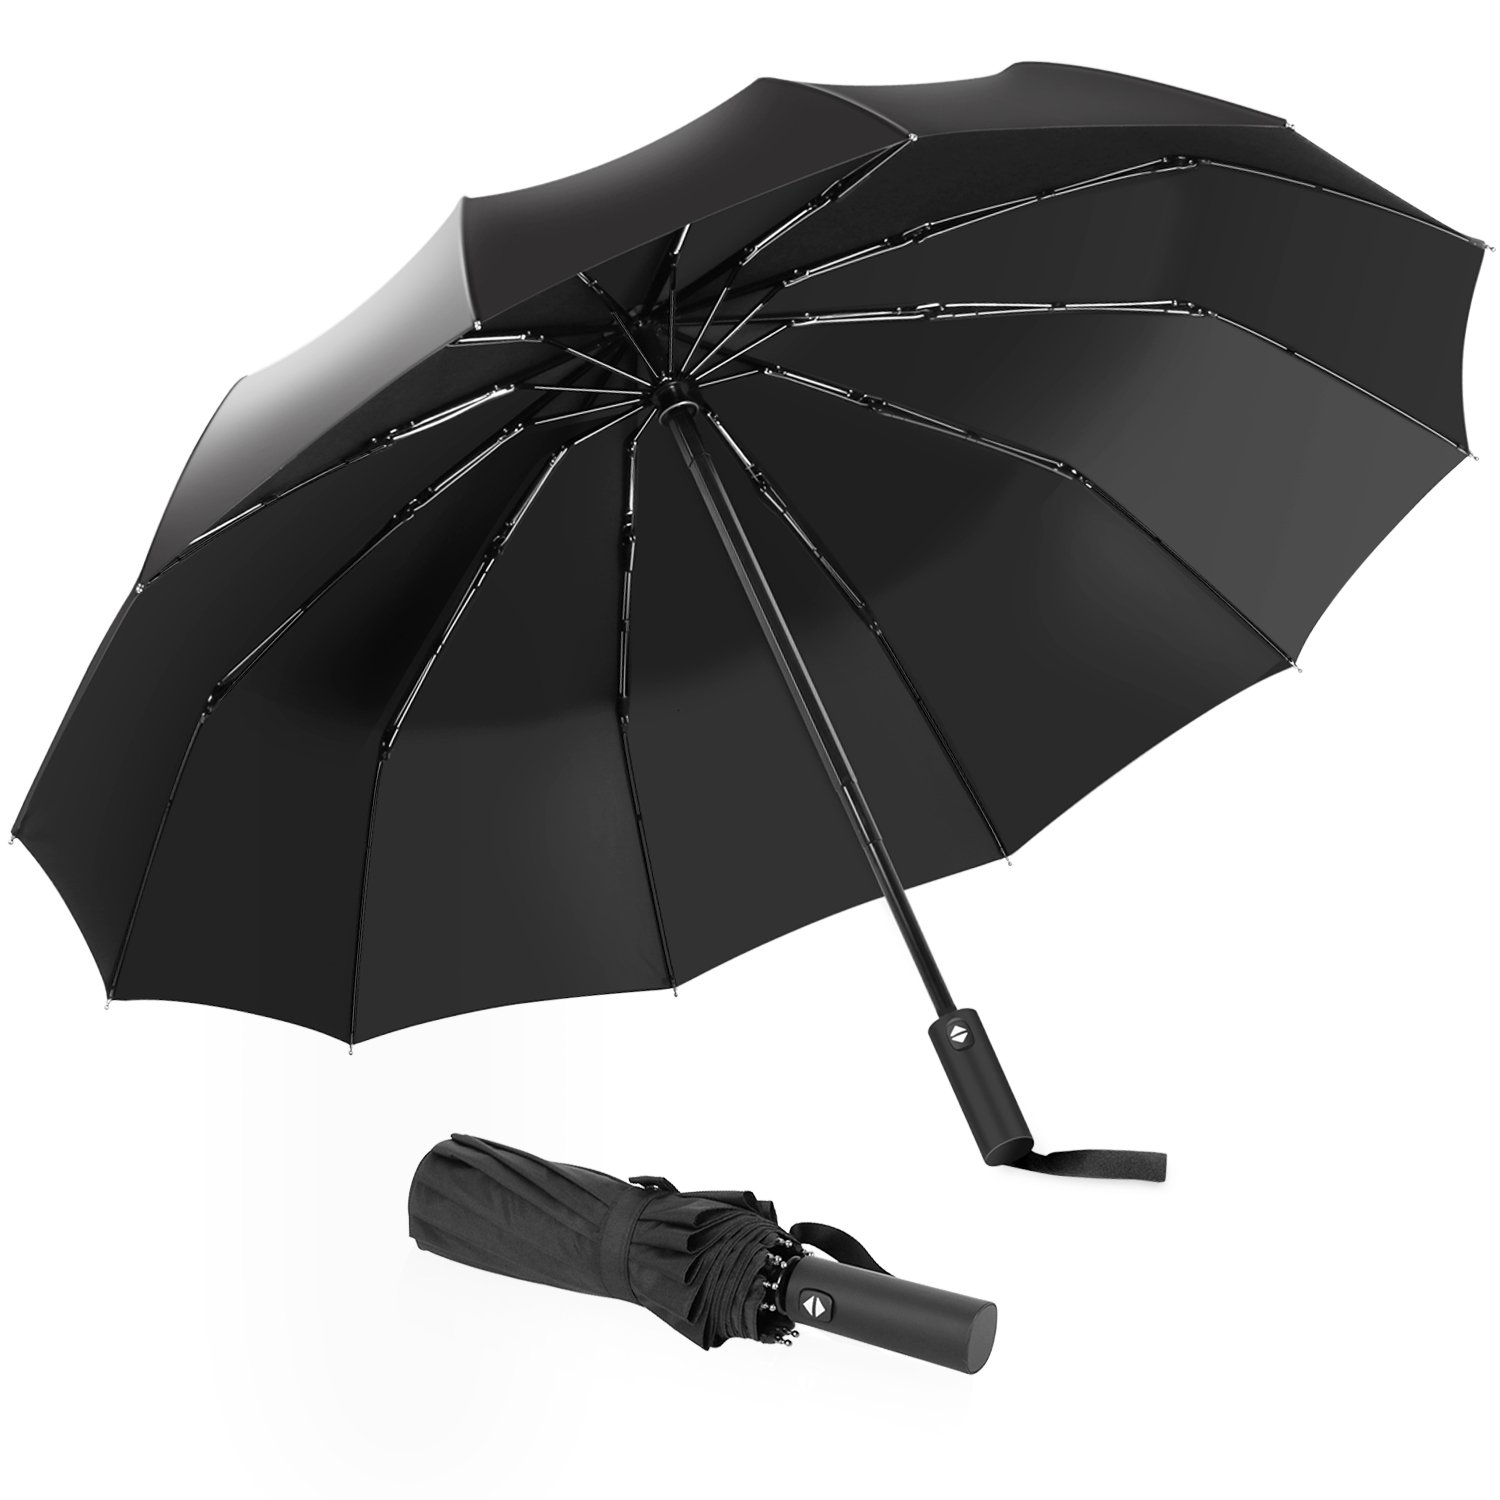 Compact Fast Drying Travel Windproof Umbrella - with 12 Reinforced Windproof Frame, Auto Open/Close, Slip-Proof Handle for Easy Carry (Black)